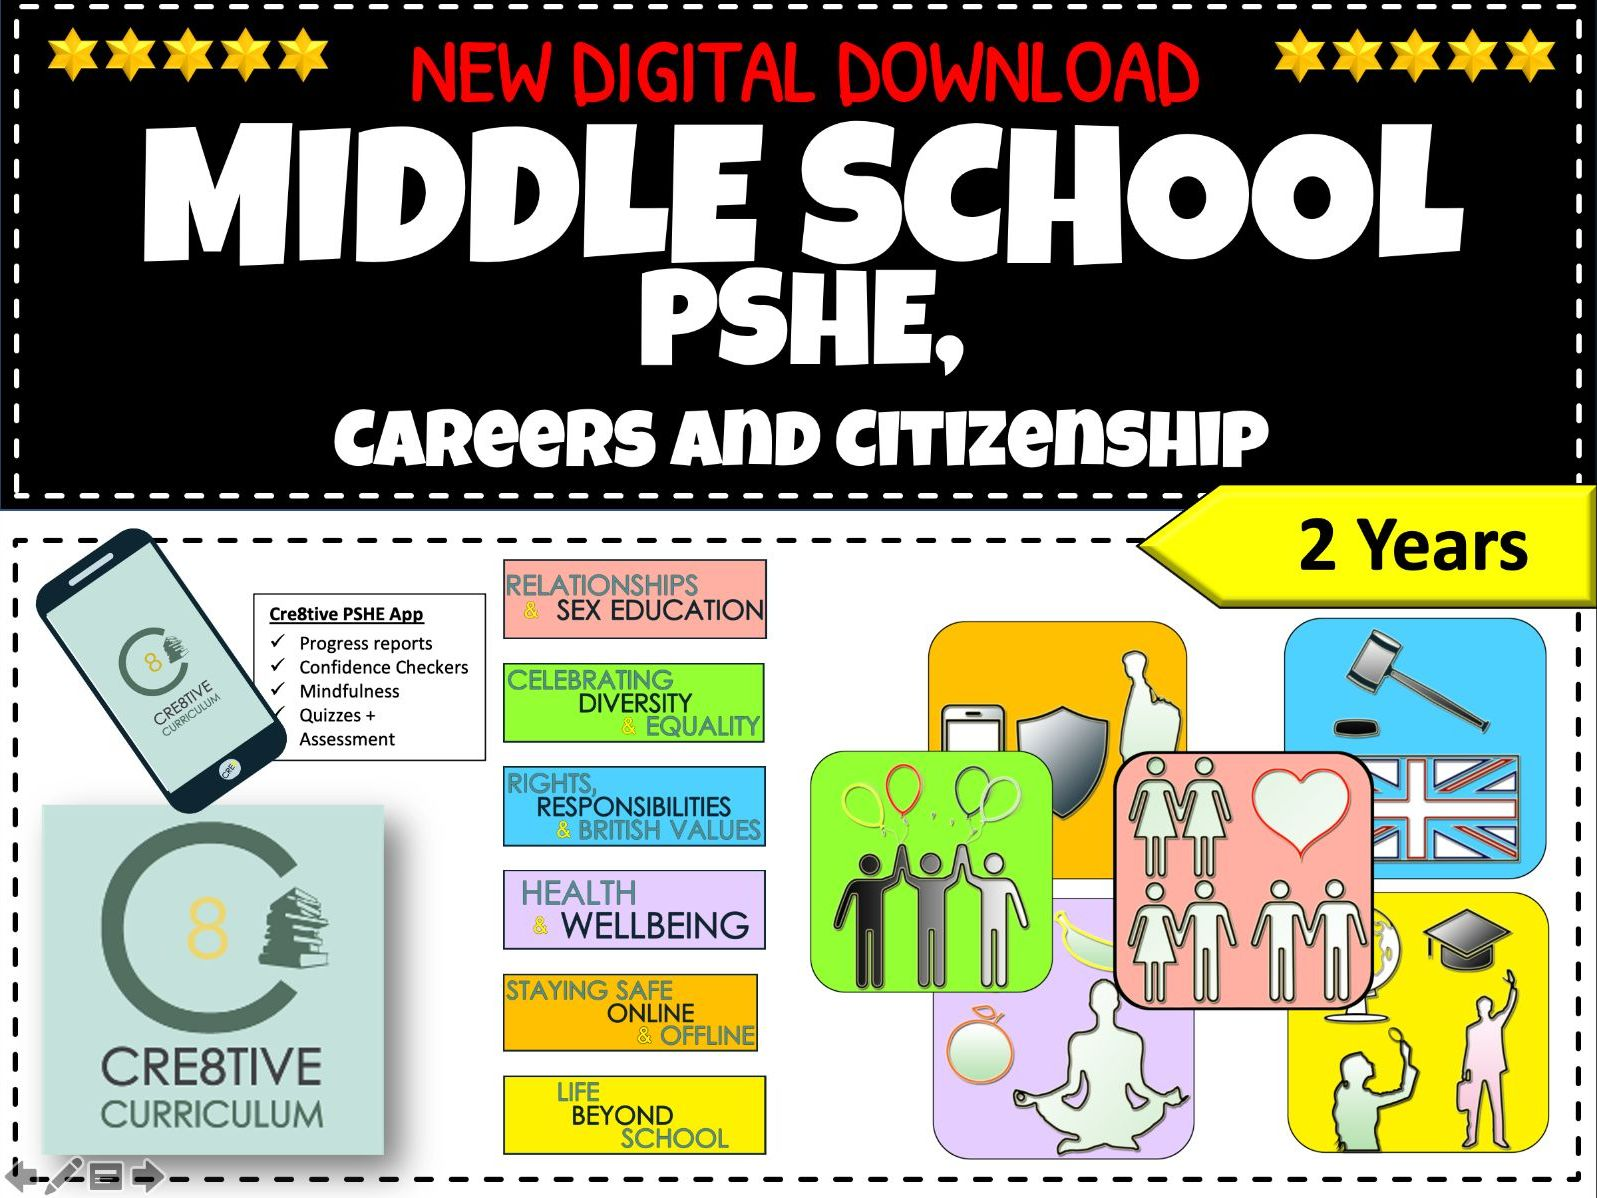 Middle School PSHE Curriculum